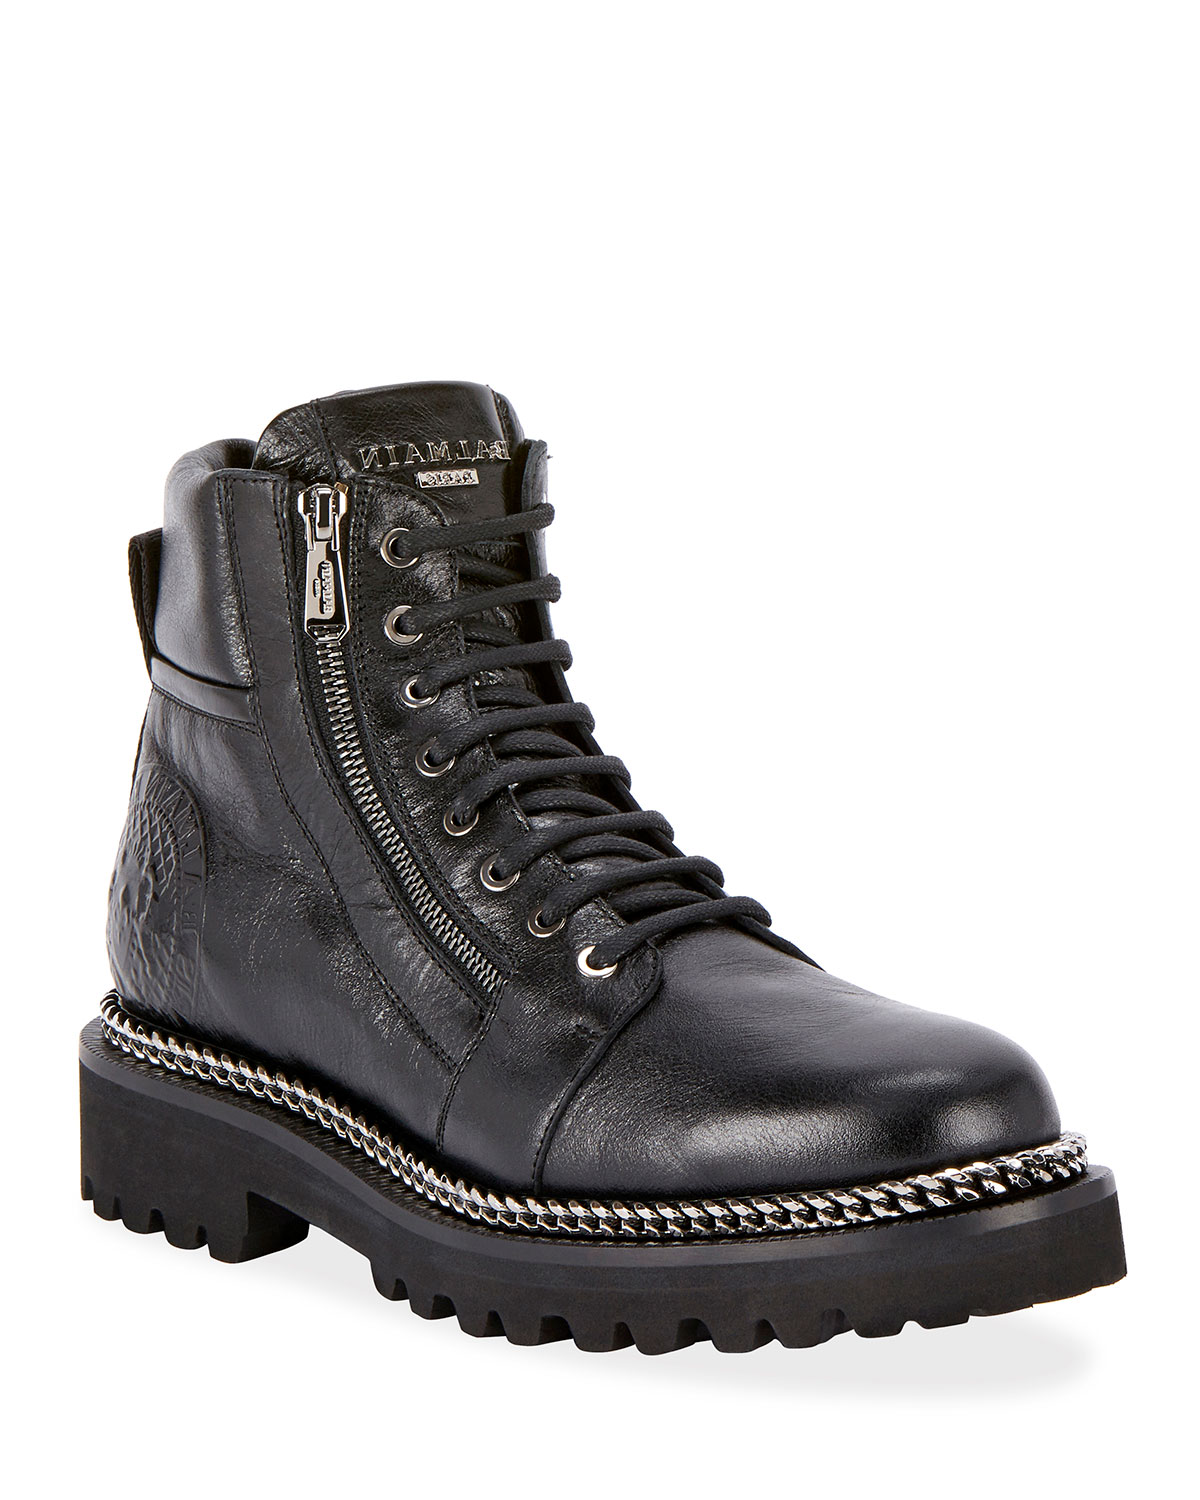 Army Shiny Chain-Trim Boots